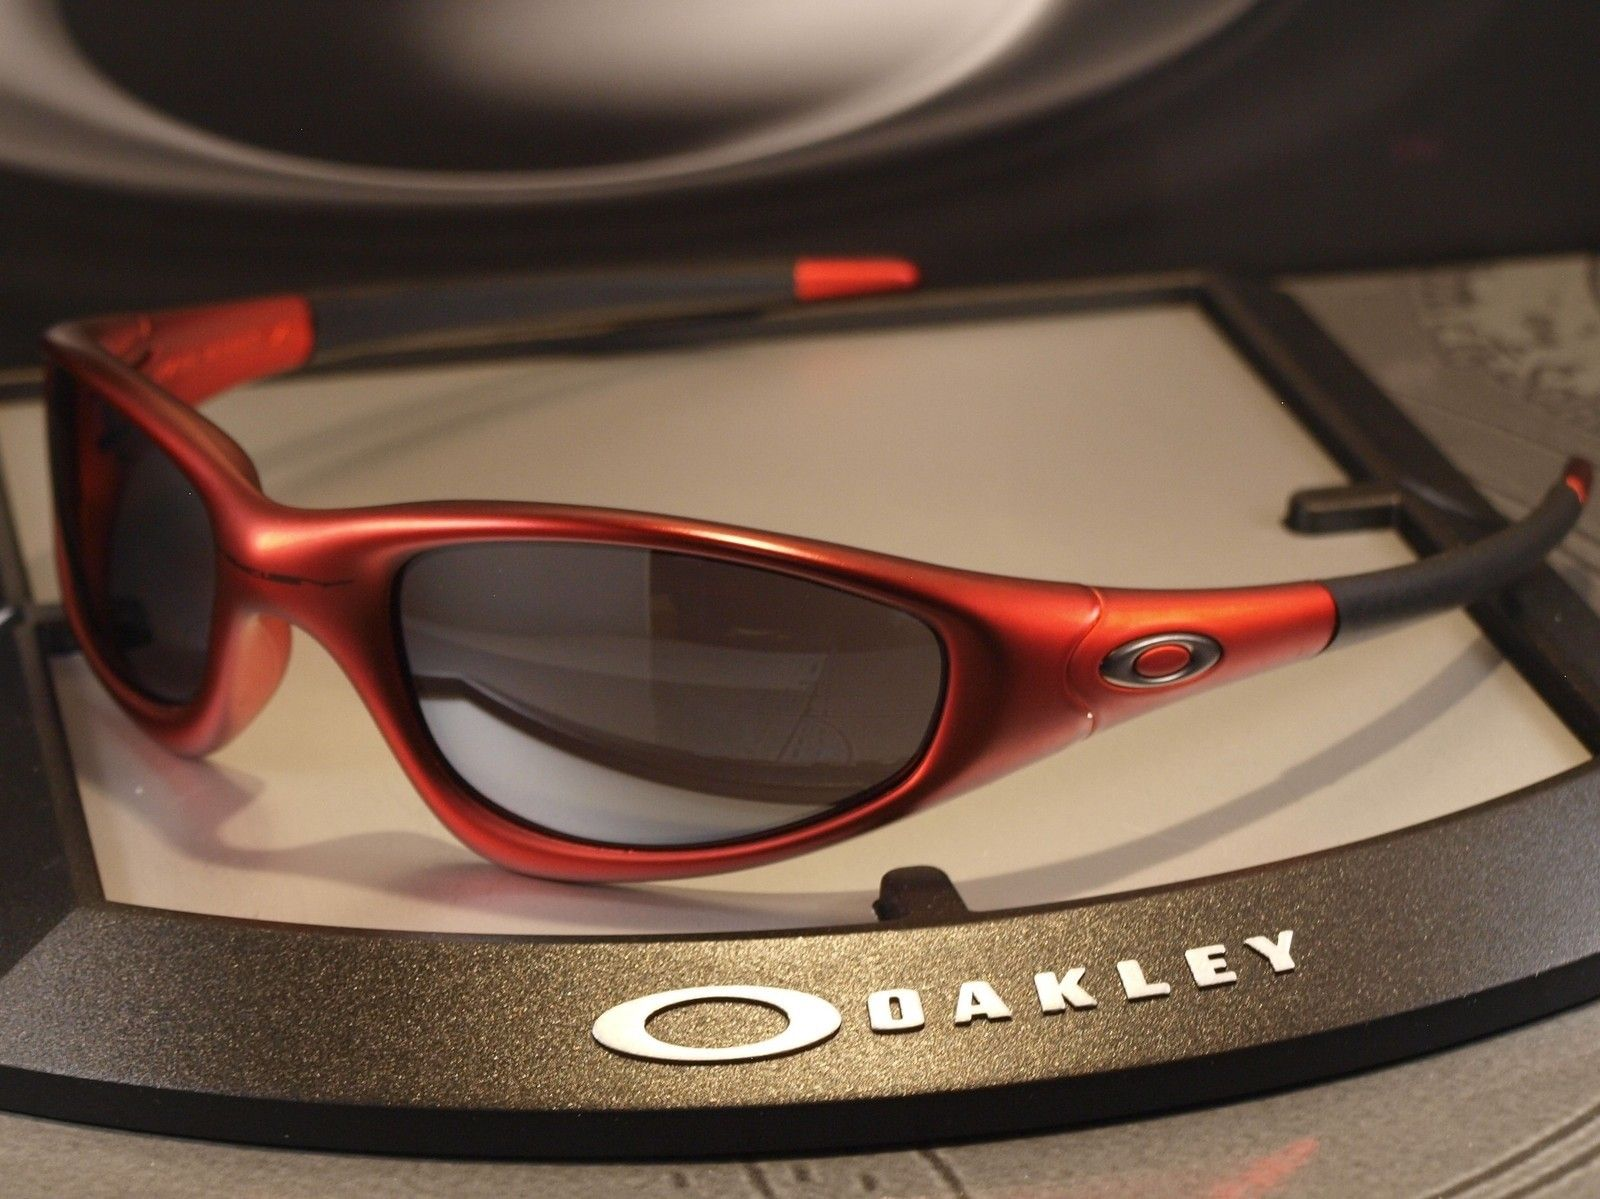 FS: OAKLEY New Straight Jacket ? RARE 04-268 ? BNIB ? Vintage ? FMJ Red ? - newstraightjktfmjred3.jpg